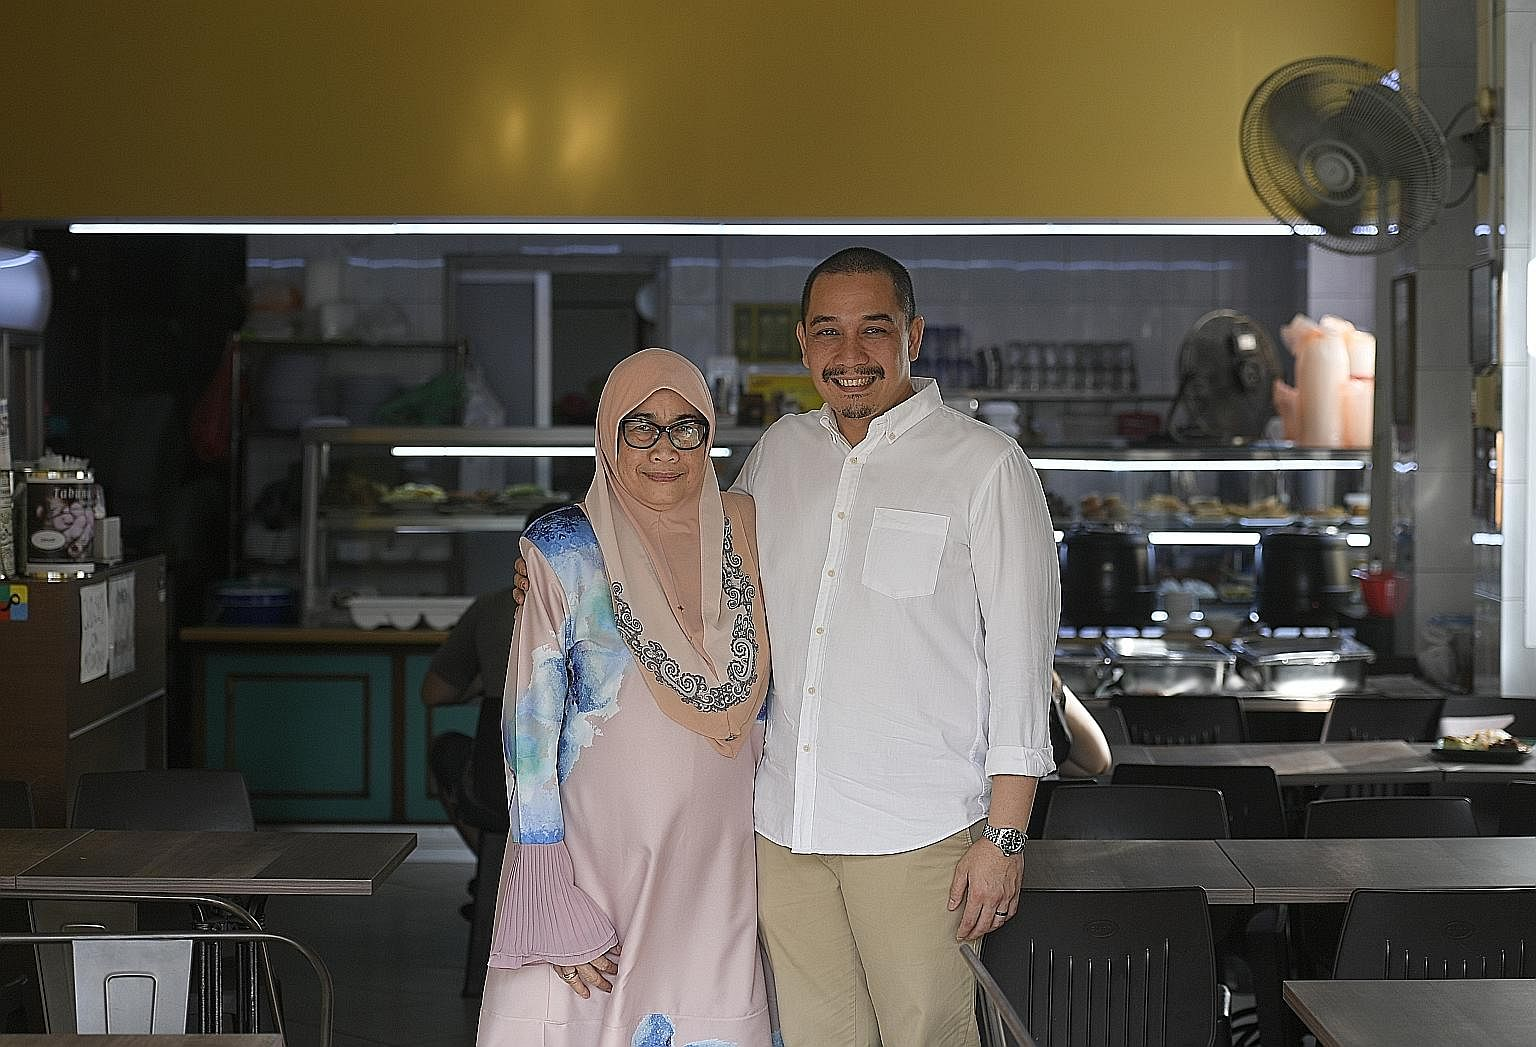 Ms Maryulis Bagindor Marlian (right), who helms Sabar Menanti in North Bridge Road, with her son Iszahar Tambunan, who helps out on Sundays. He is hoping to expand the business.